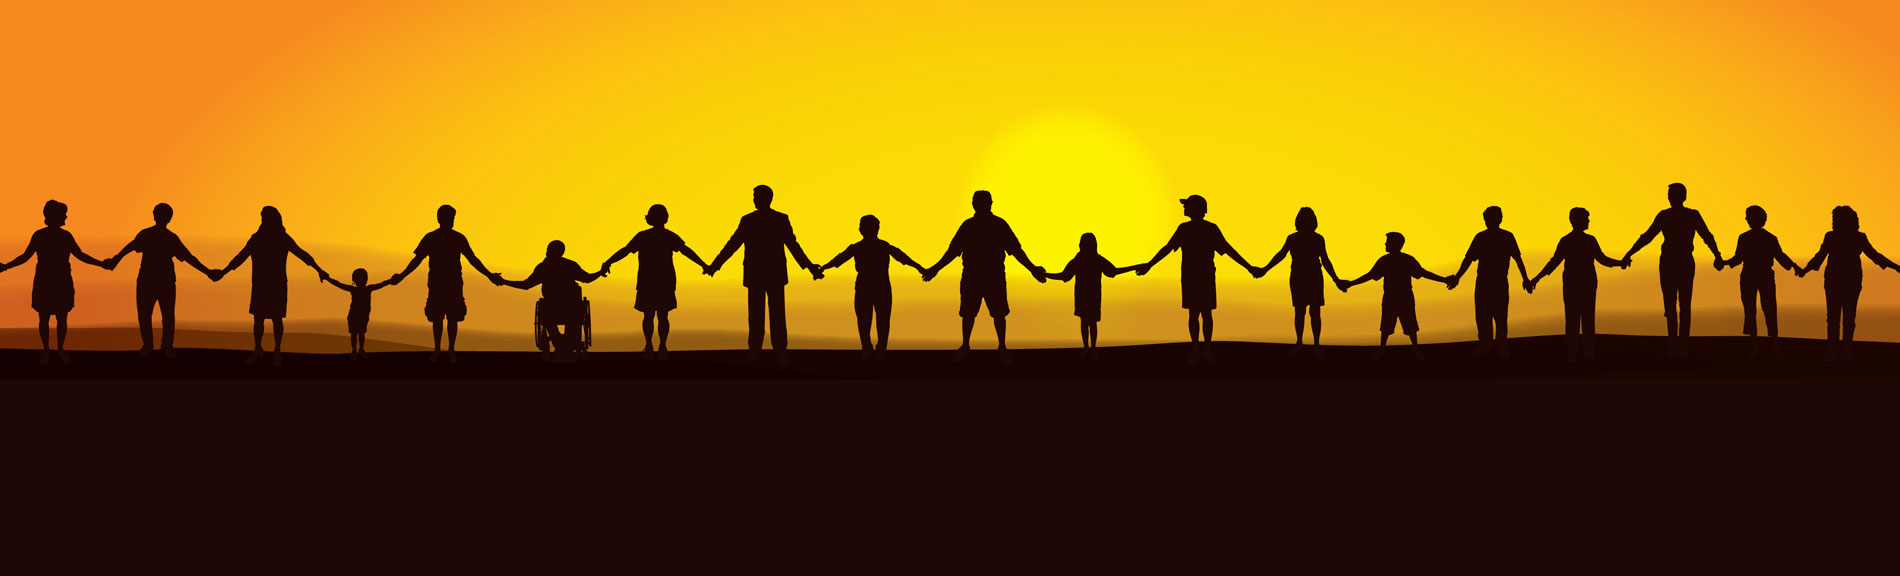 Corporate Social Responsibility Image of People Holding Hands at Sunrise